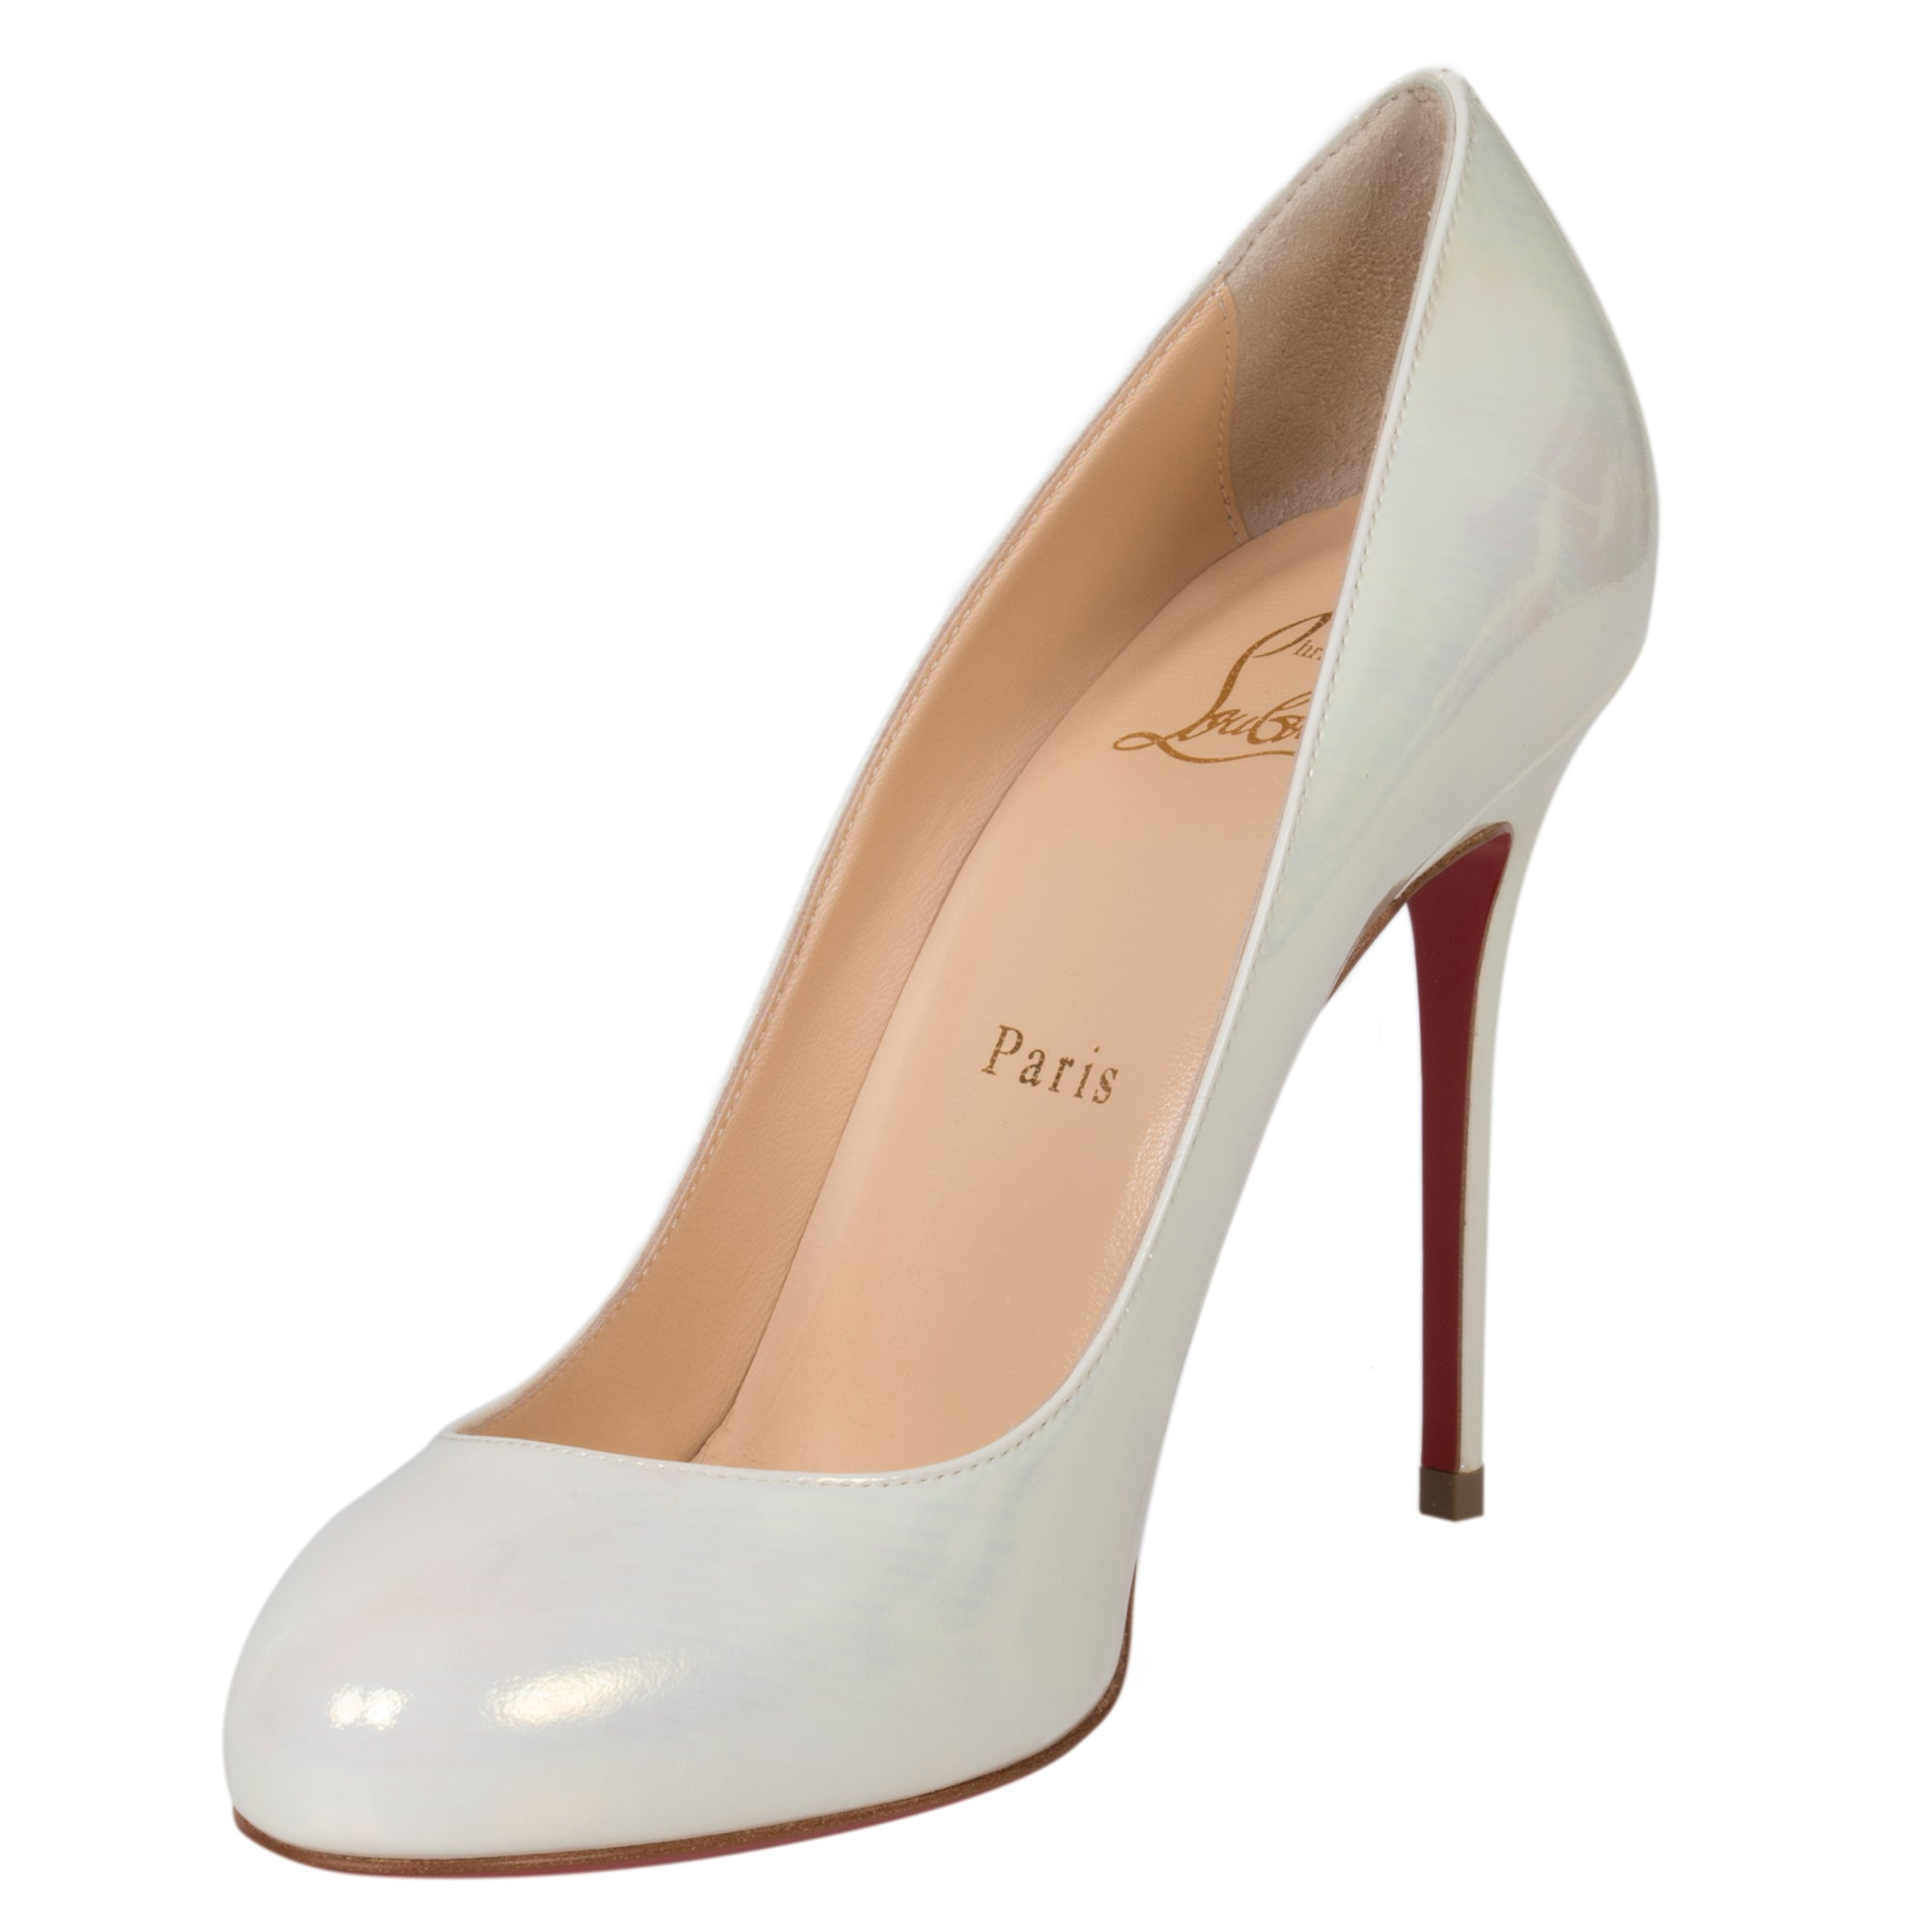 Christian Louboutin Fifi Iridescent Pearl White Patent Leather 100mm Pumps